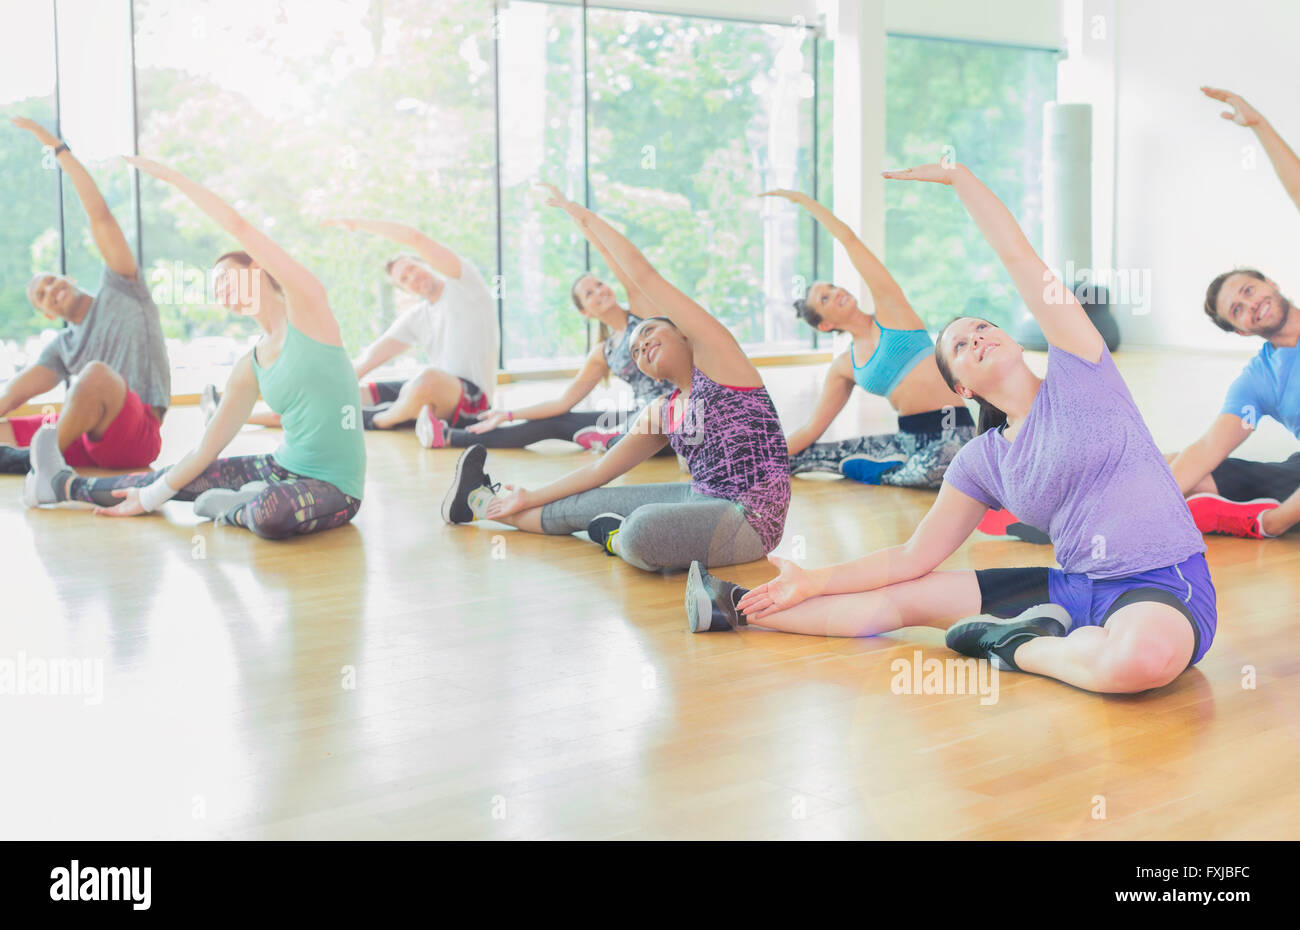 Exercise class stretching arms - Stock Image